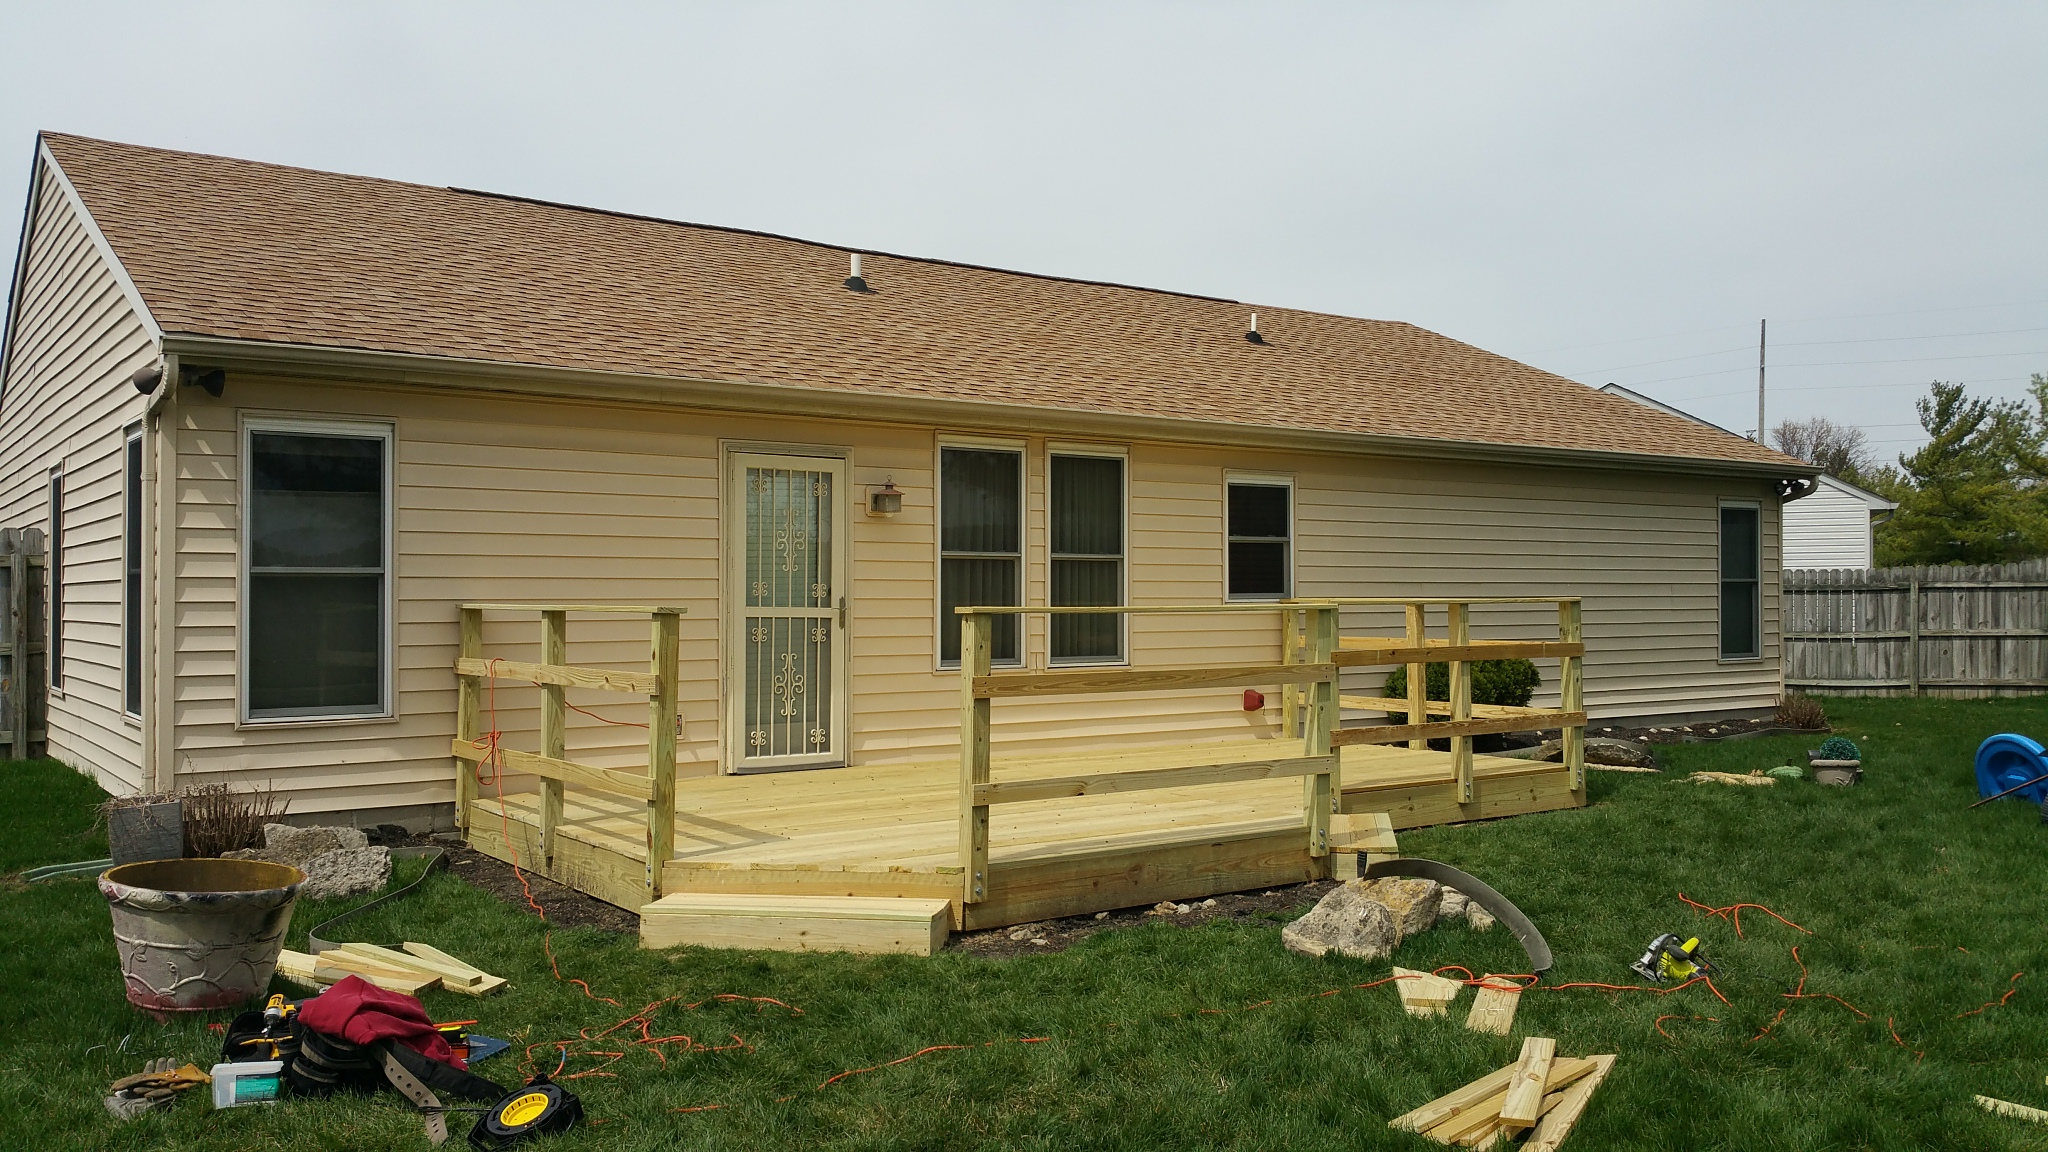 Painting | Indianapolis | The Well Known Handyman, LLC